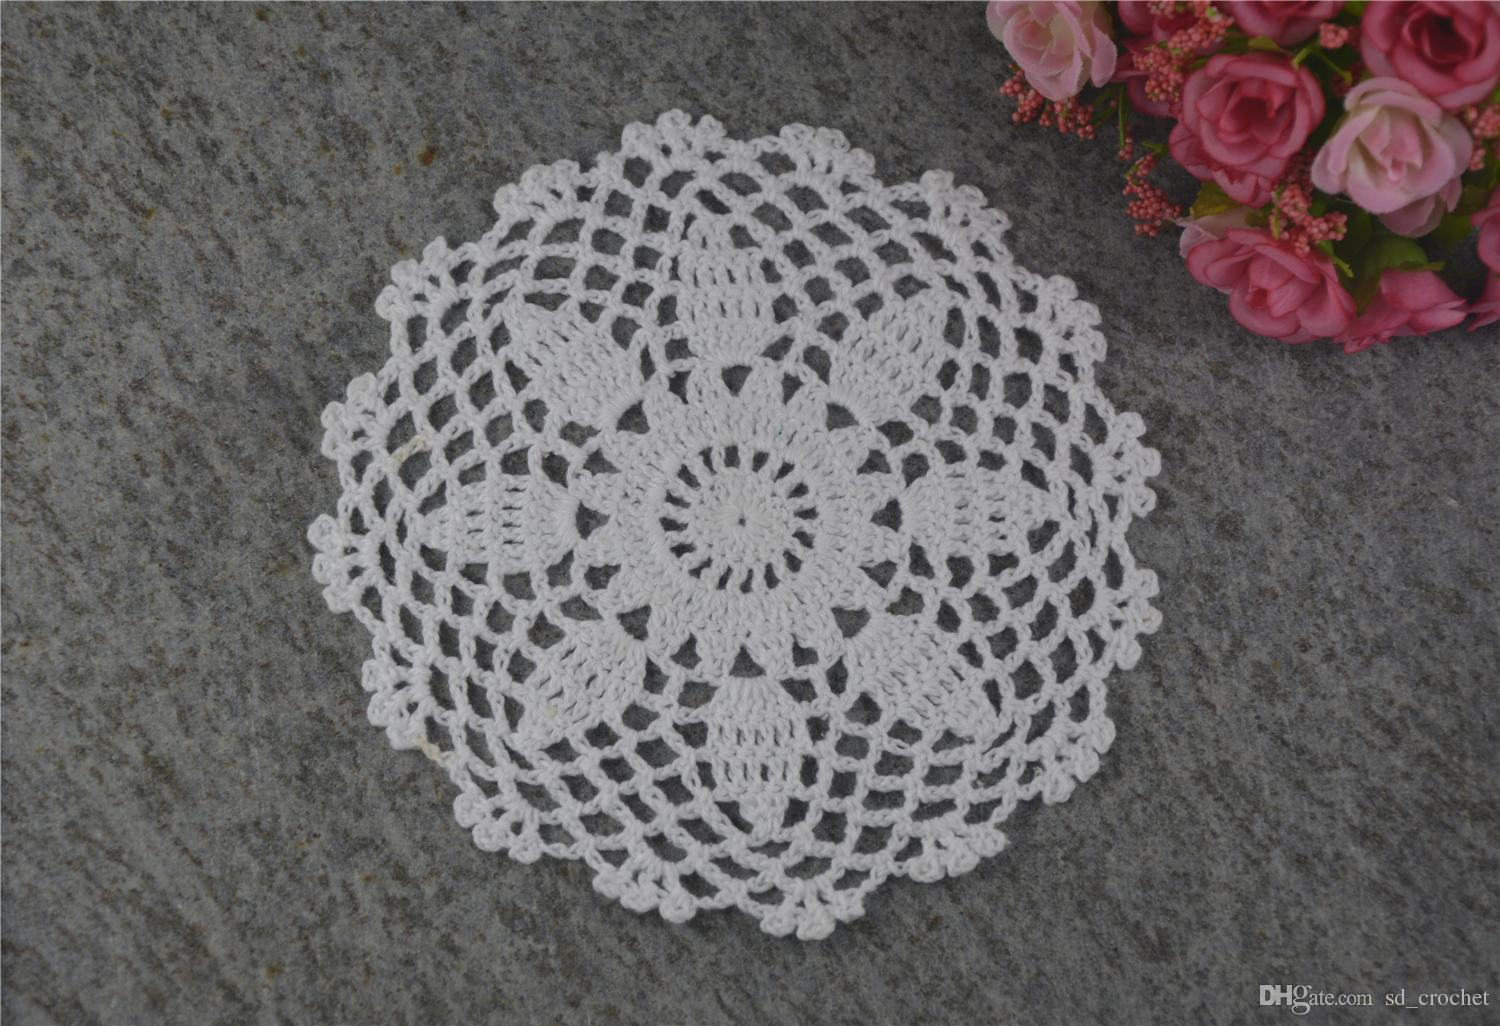 DIY Design Wedding Handmade Crochet Coasters Doily Placemats Crocheted Doilies Size 6 inches 30 PCS/ LOT Custom Color _DSC0101